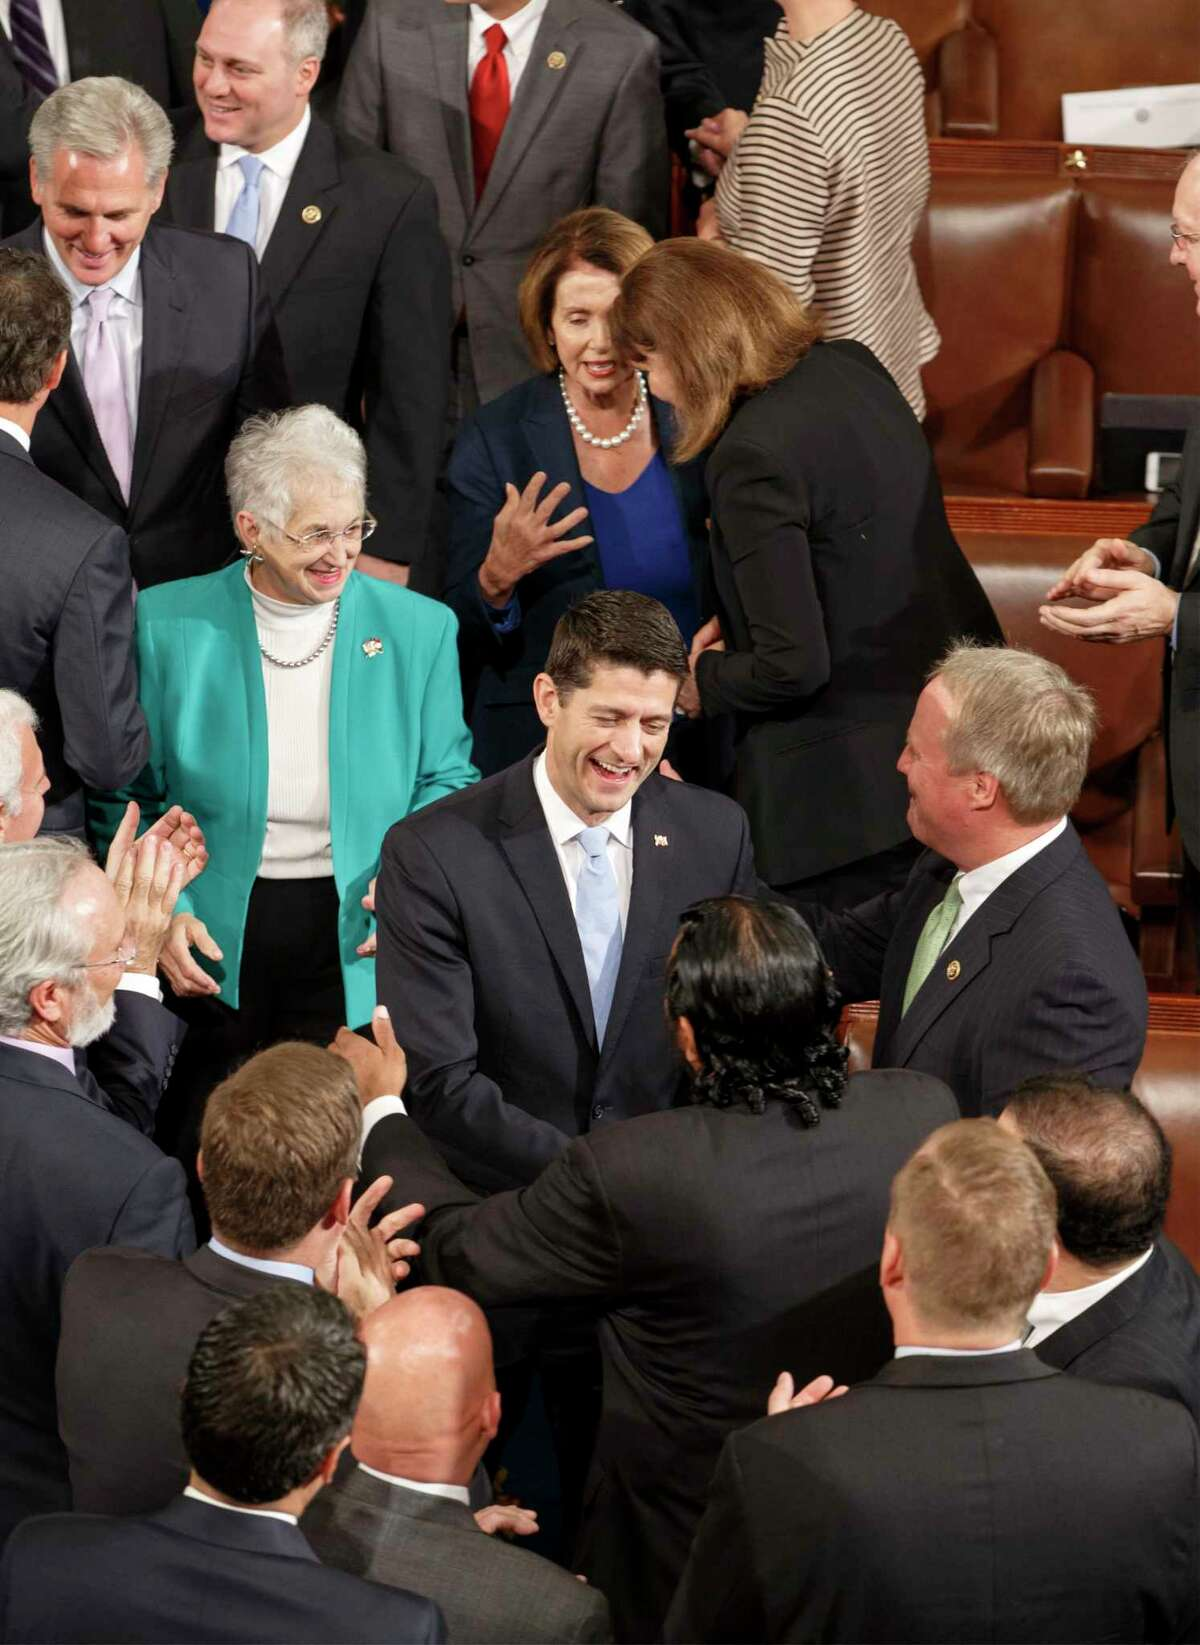 Newly elected House Speaker Paul Ryan, R-Wis., (center) smiles as he is welcomed to the House Chamber on Capitol Hill in Washington on Oct. 29, 2015, following the resignation of John Boehner.